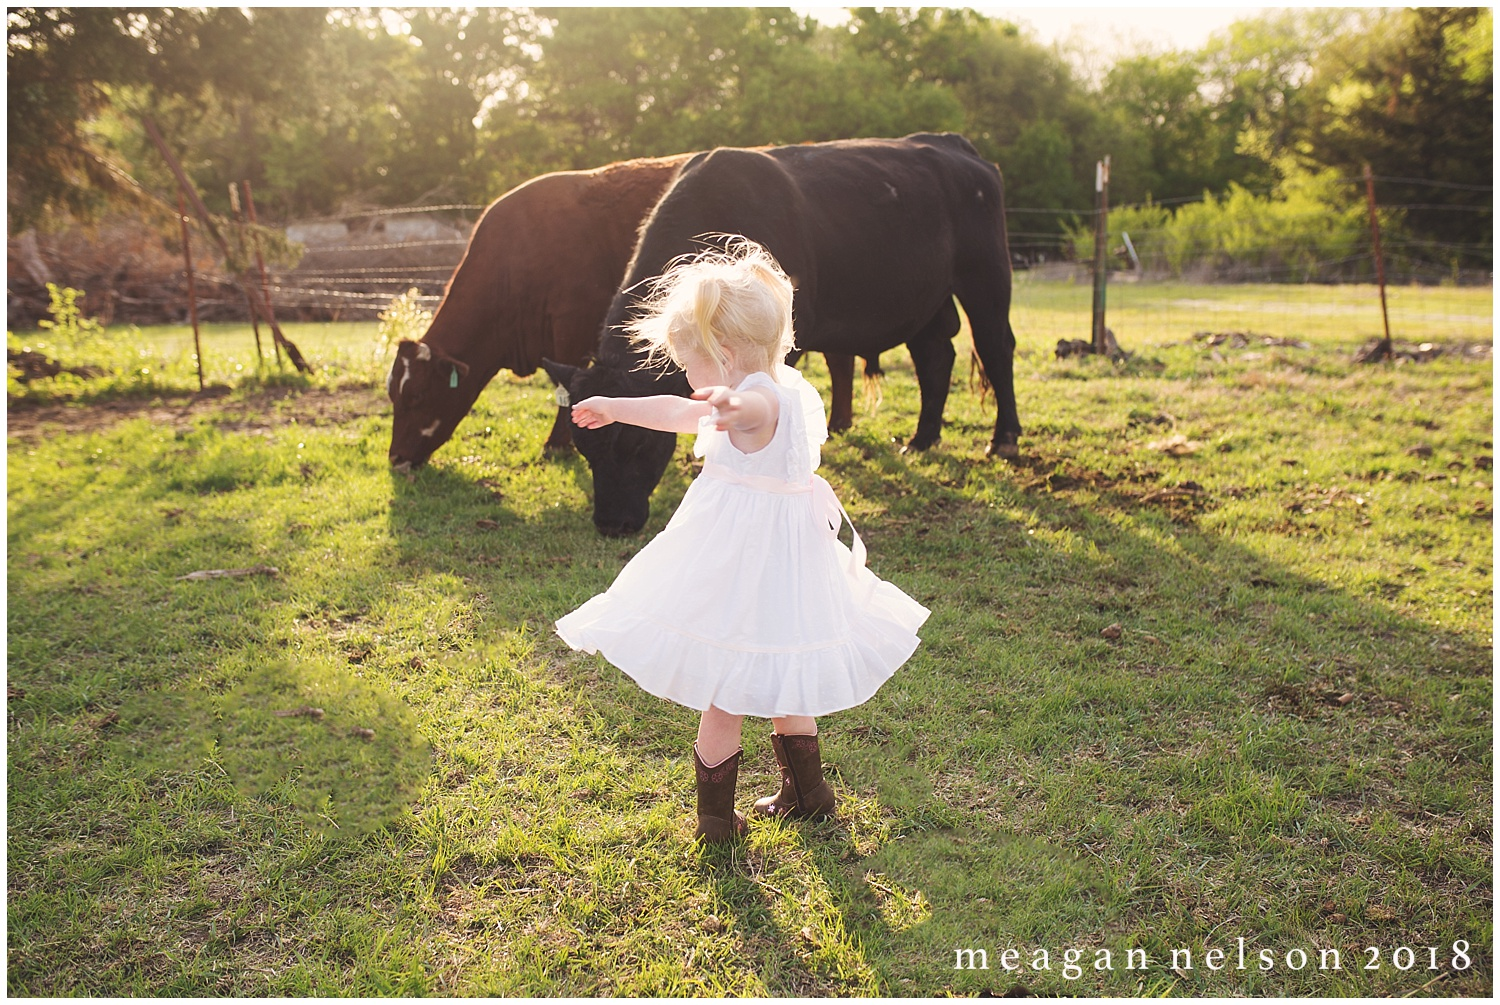 fort_worth_family_photographer_cow_mini_sessions028.jpg